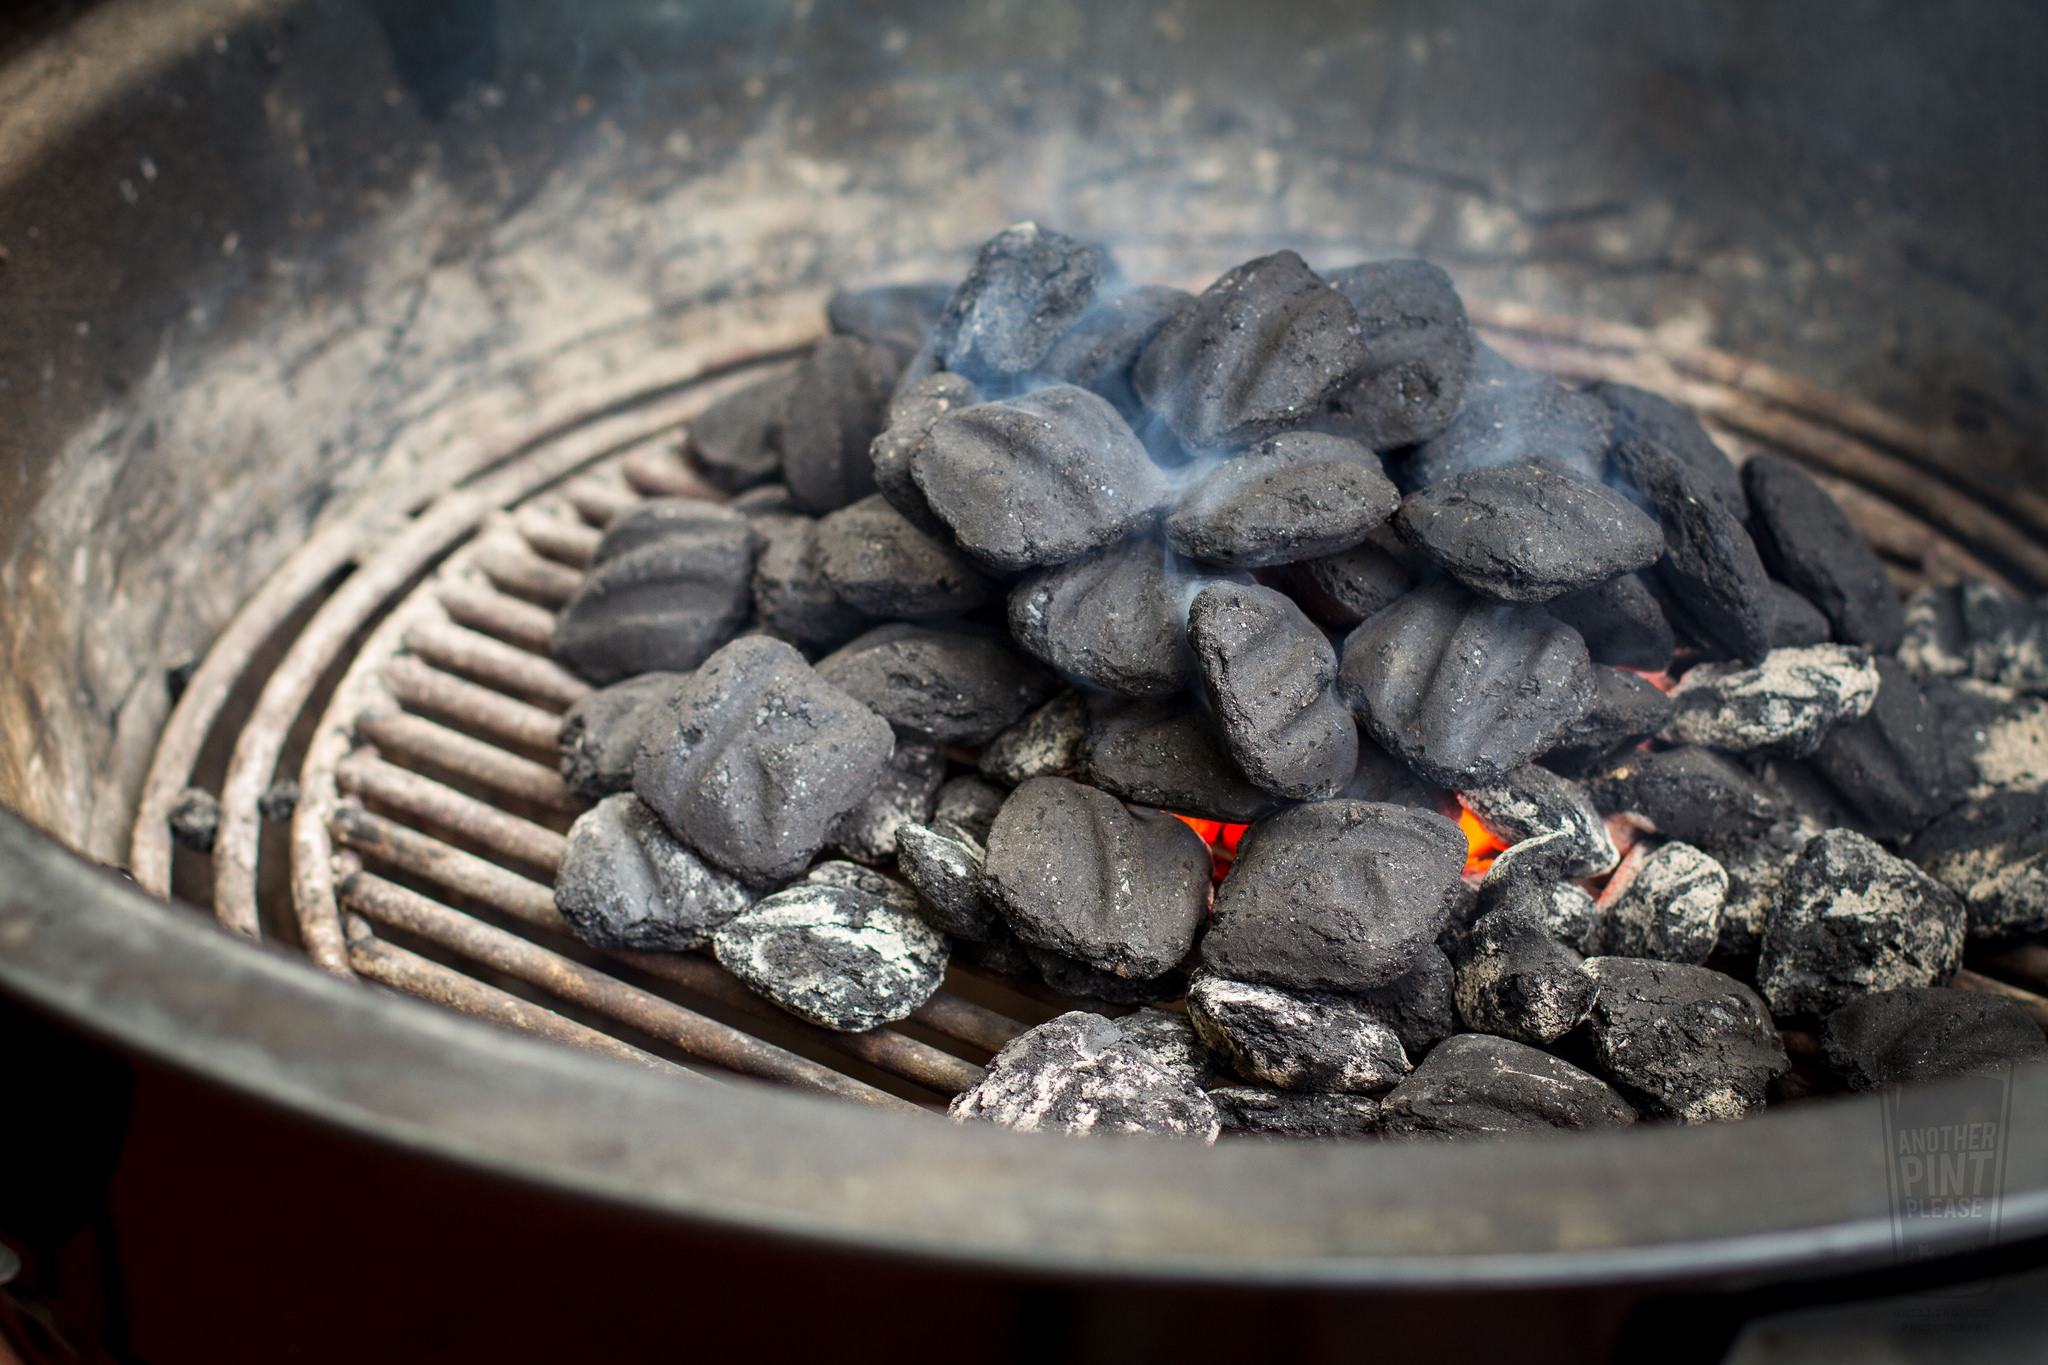 lit charcoal on weber summit charcoal grill.jpg